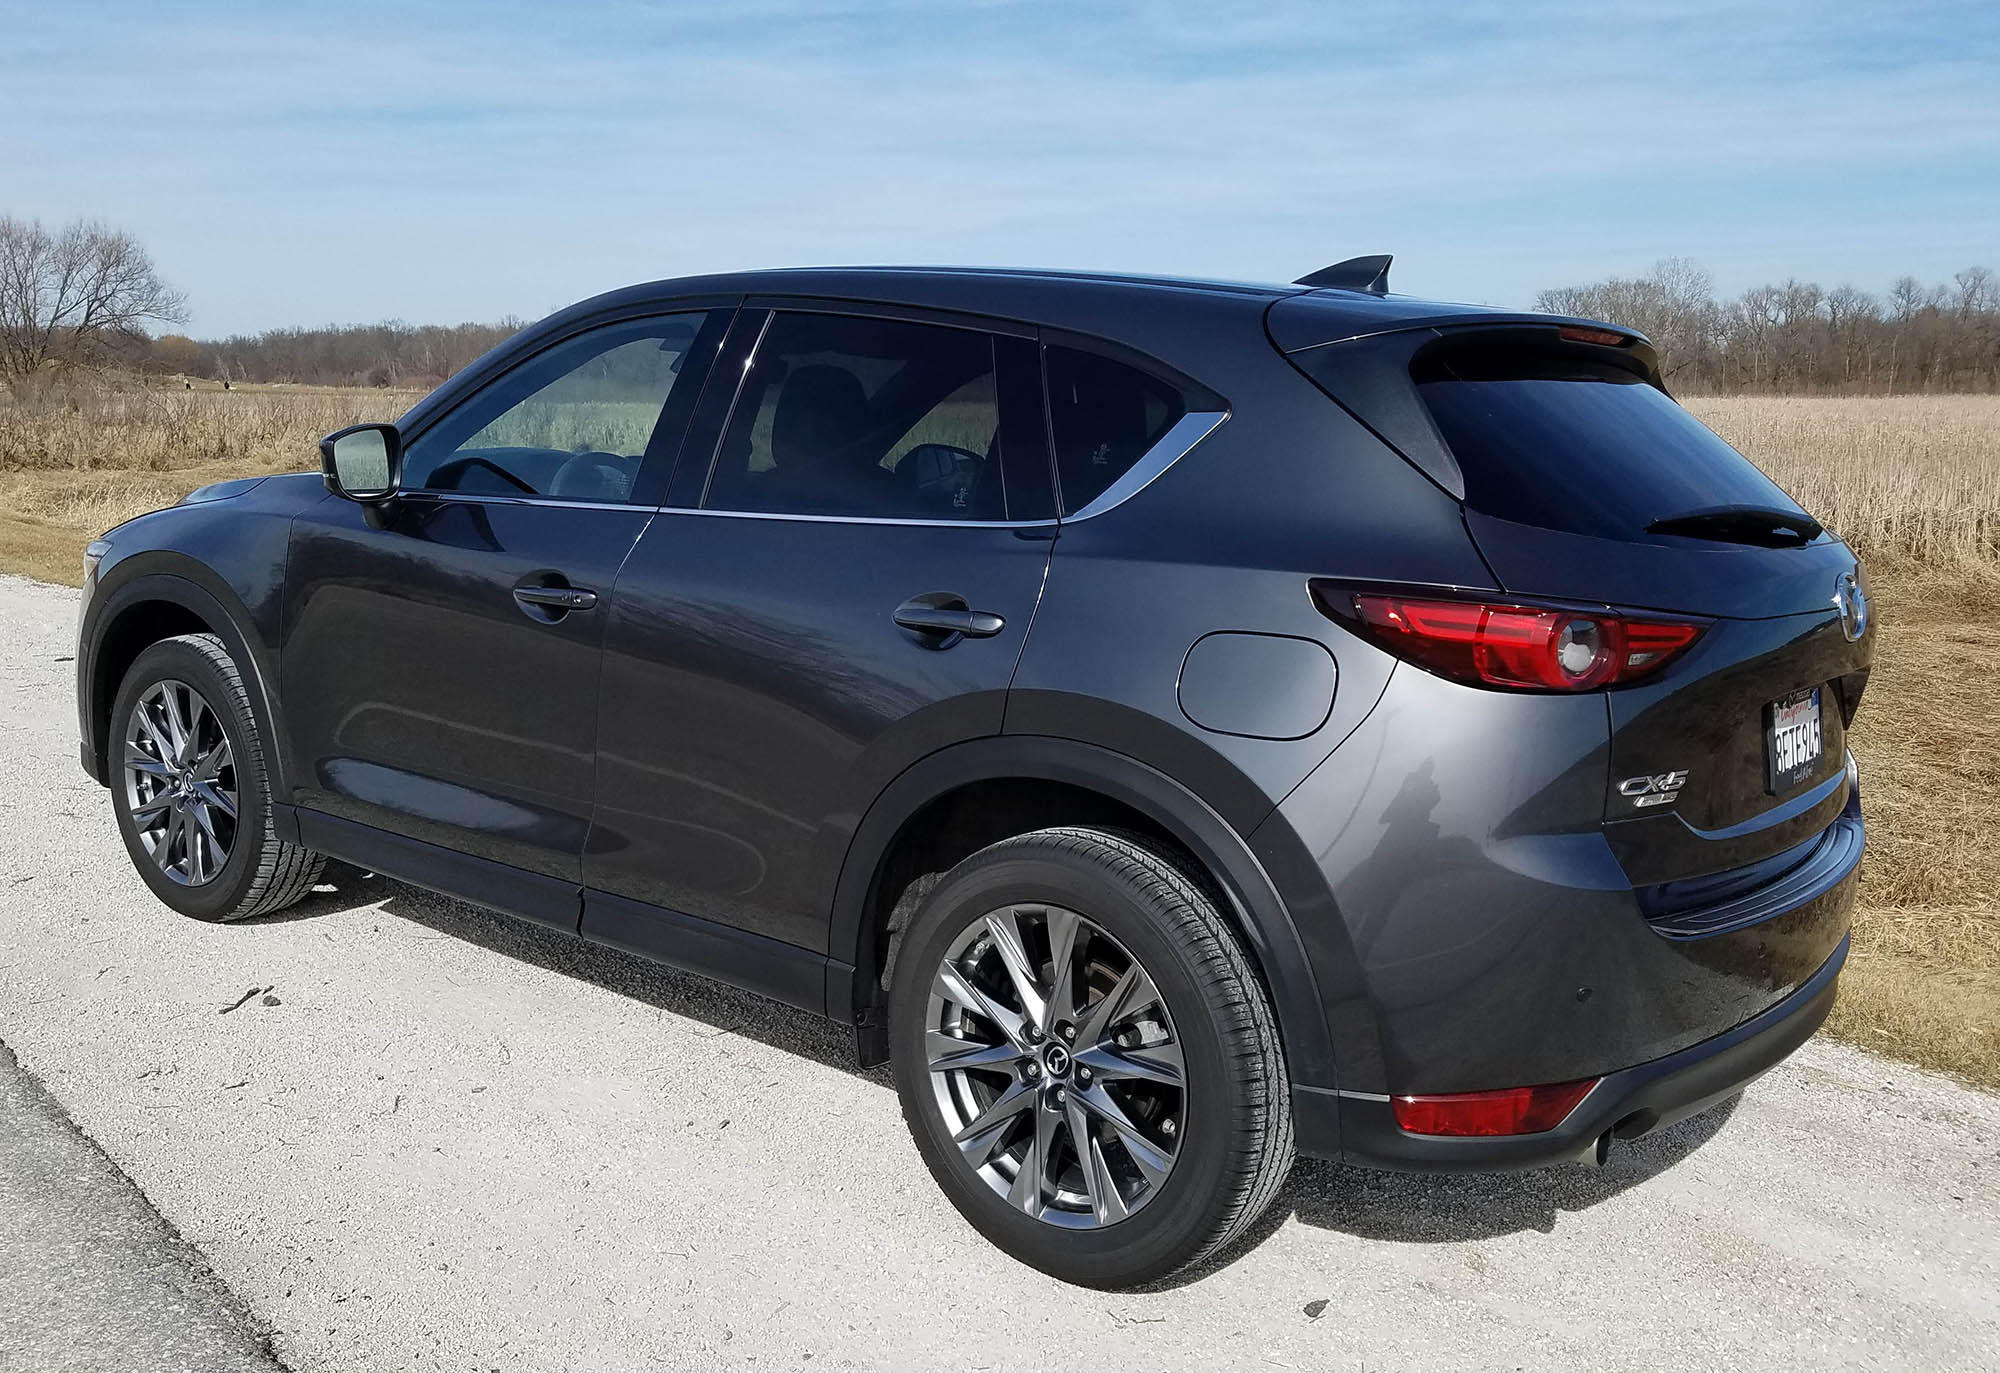 2019 Mazda CX-5 Signature AWD Review: Looks, Power ...